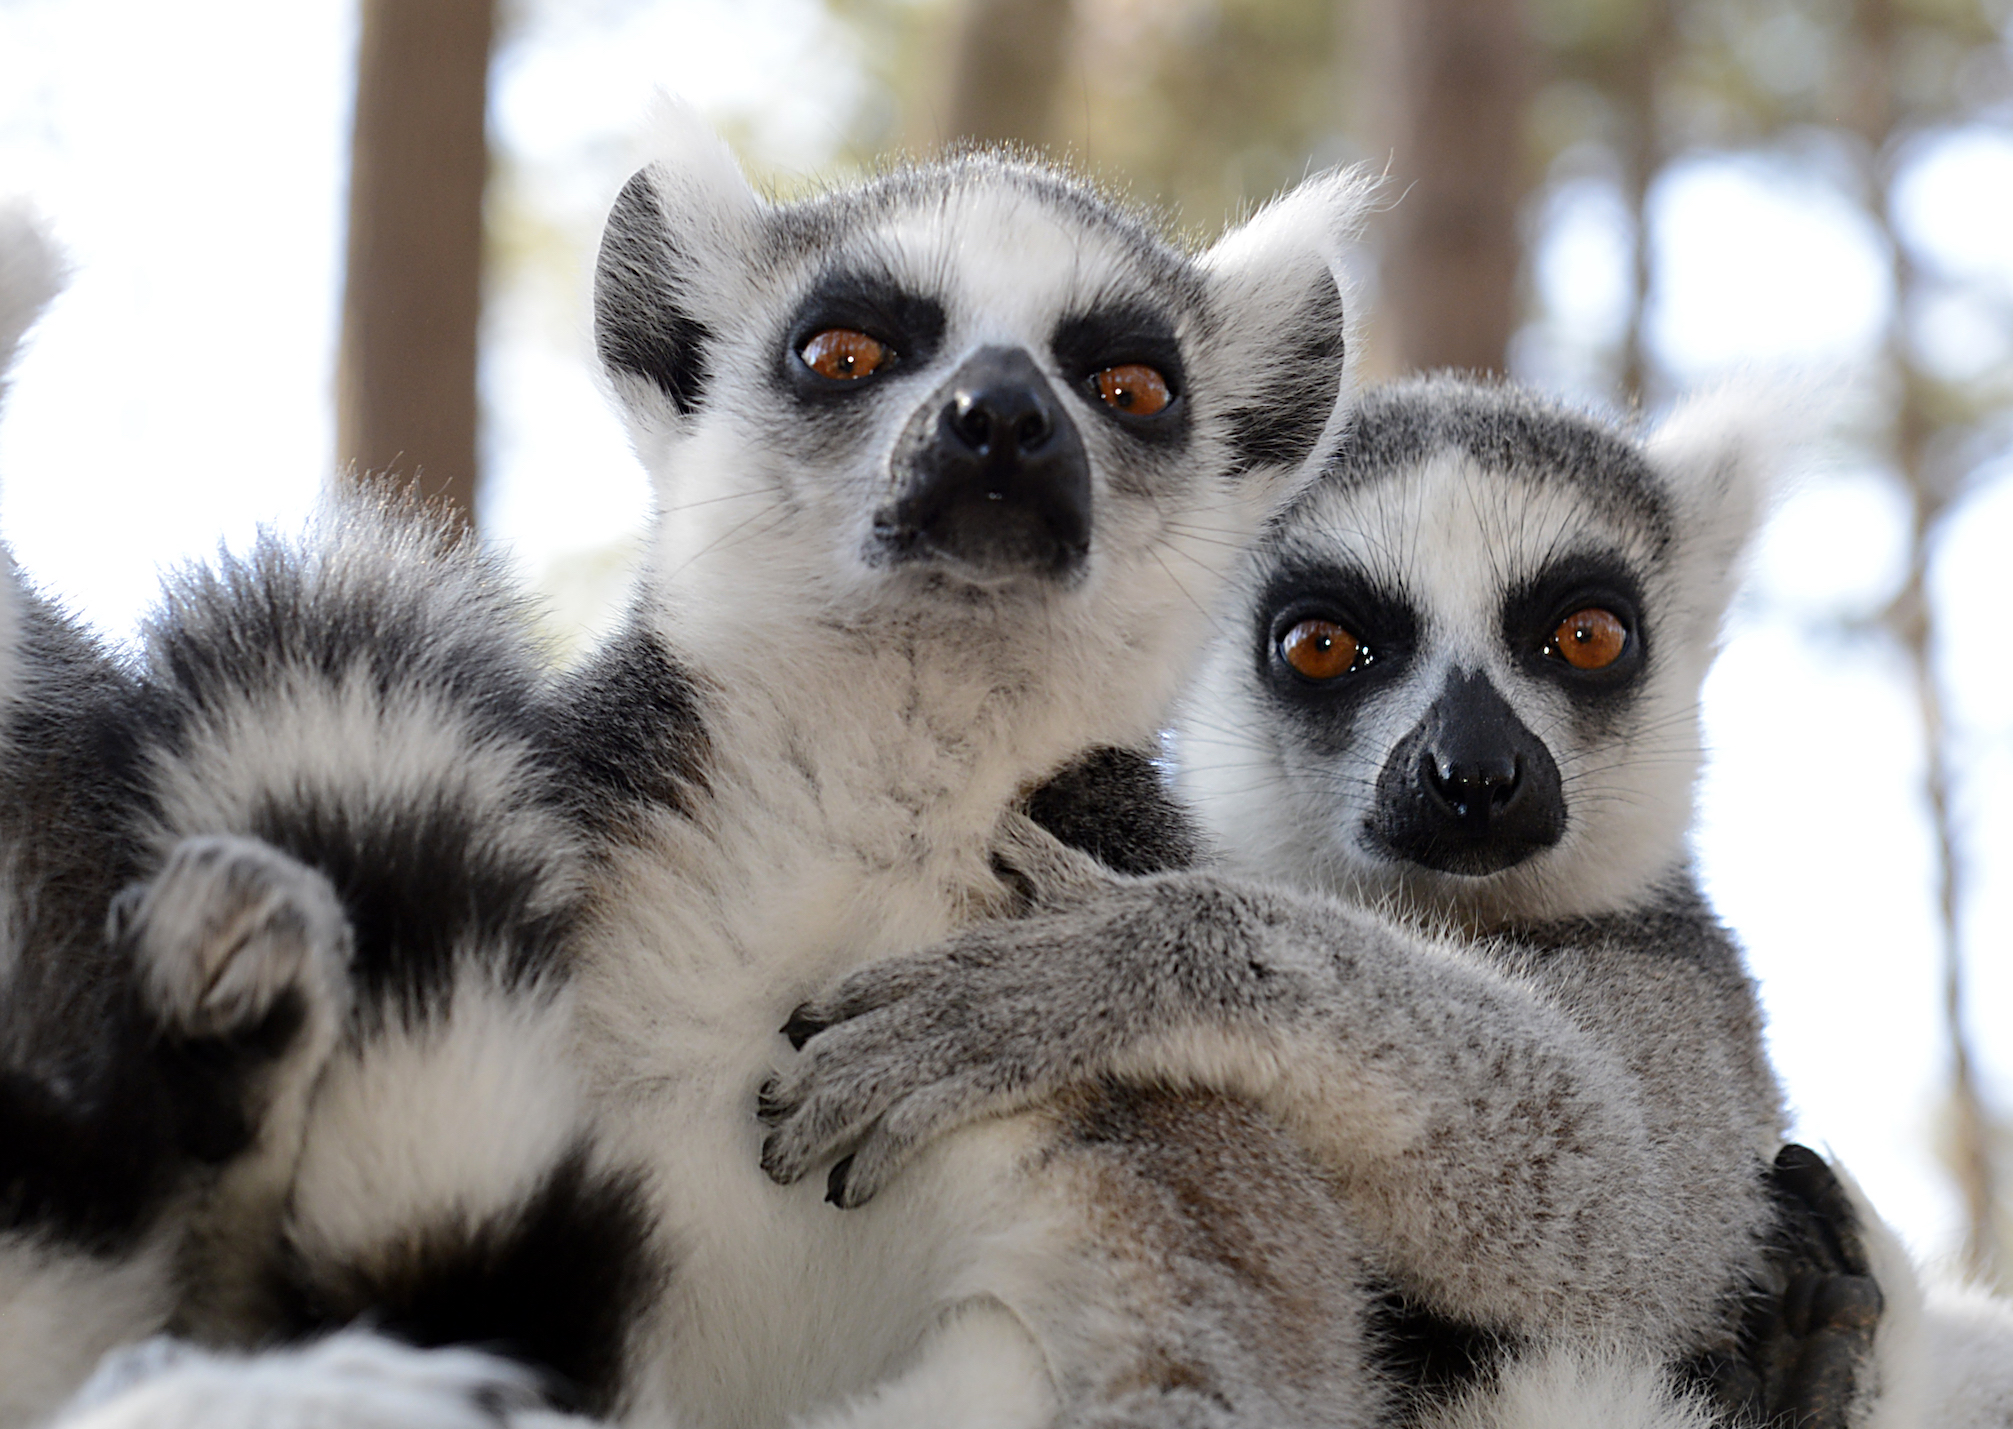 Researchers at Duke University have found that lemurs can pick up on weakness in others through their natural scent.